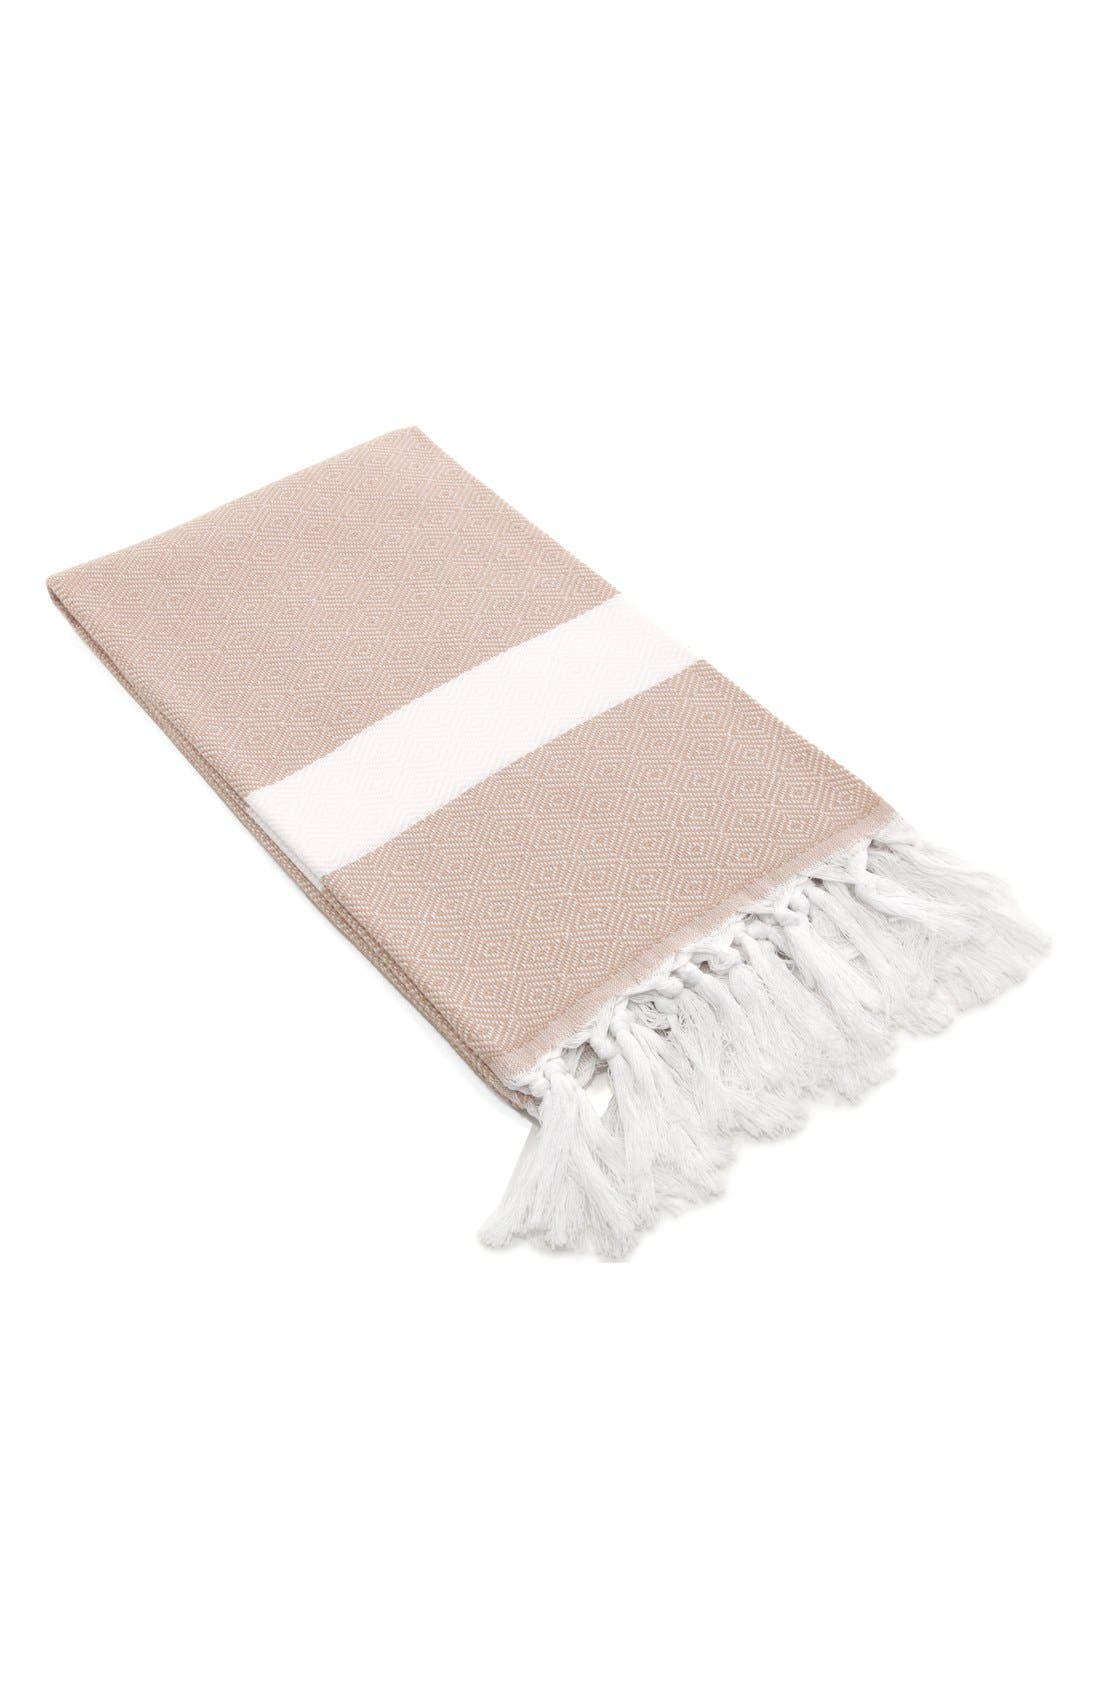 'Diamond' Turkish Pestemal Towel,                             Main thumbnail 1, color,                             BEIGE